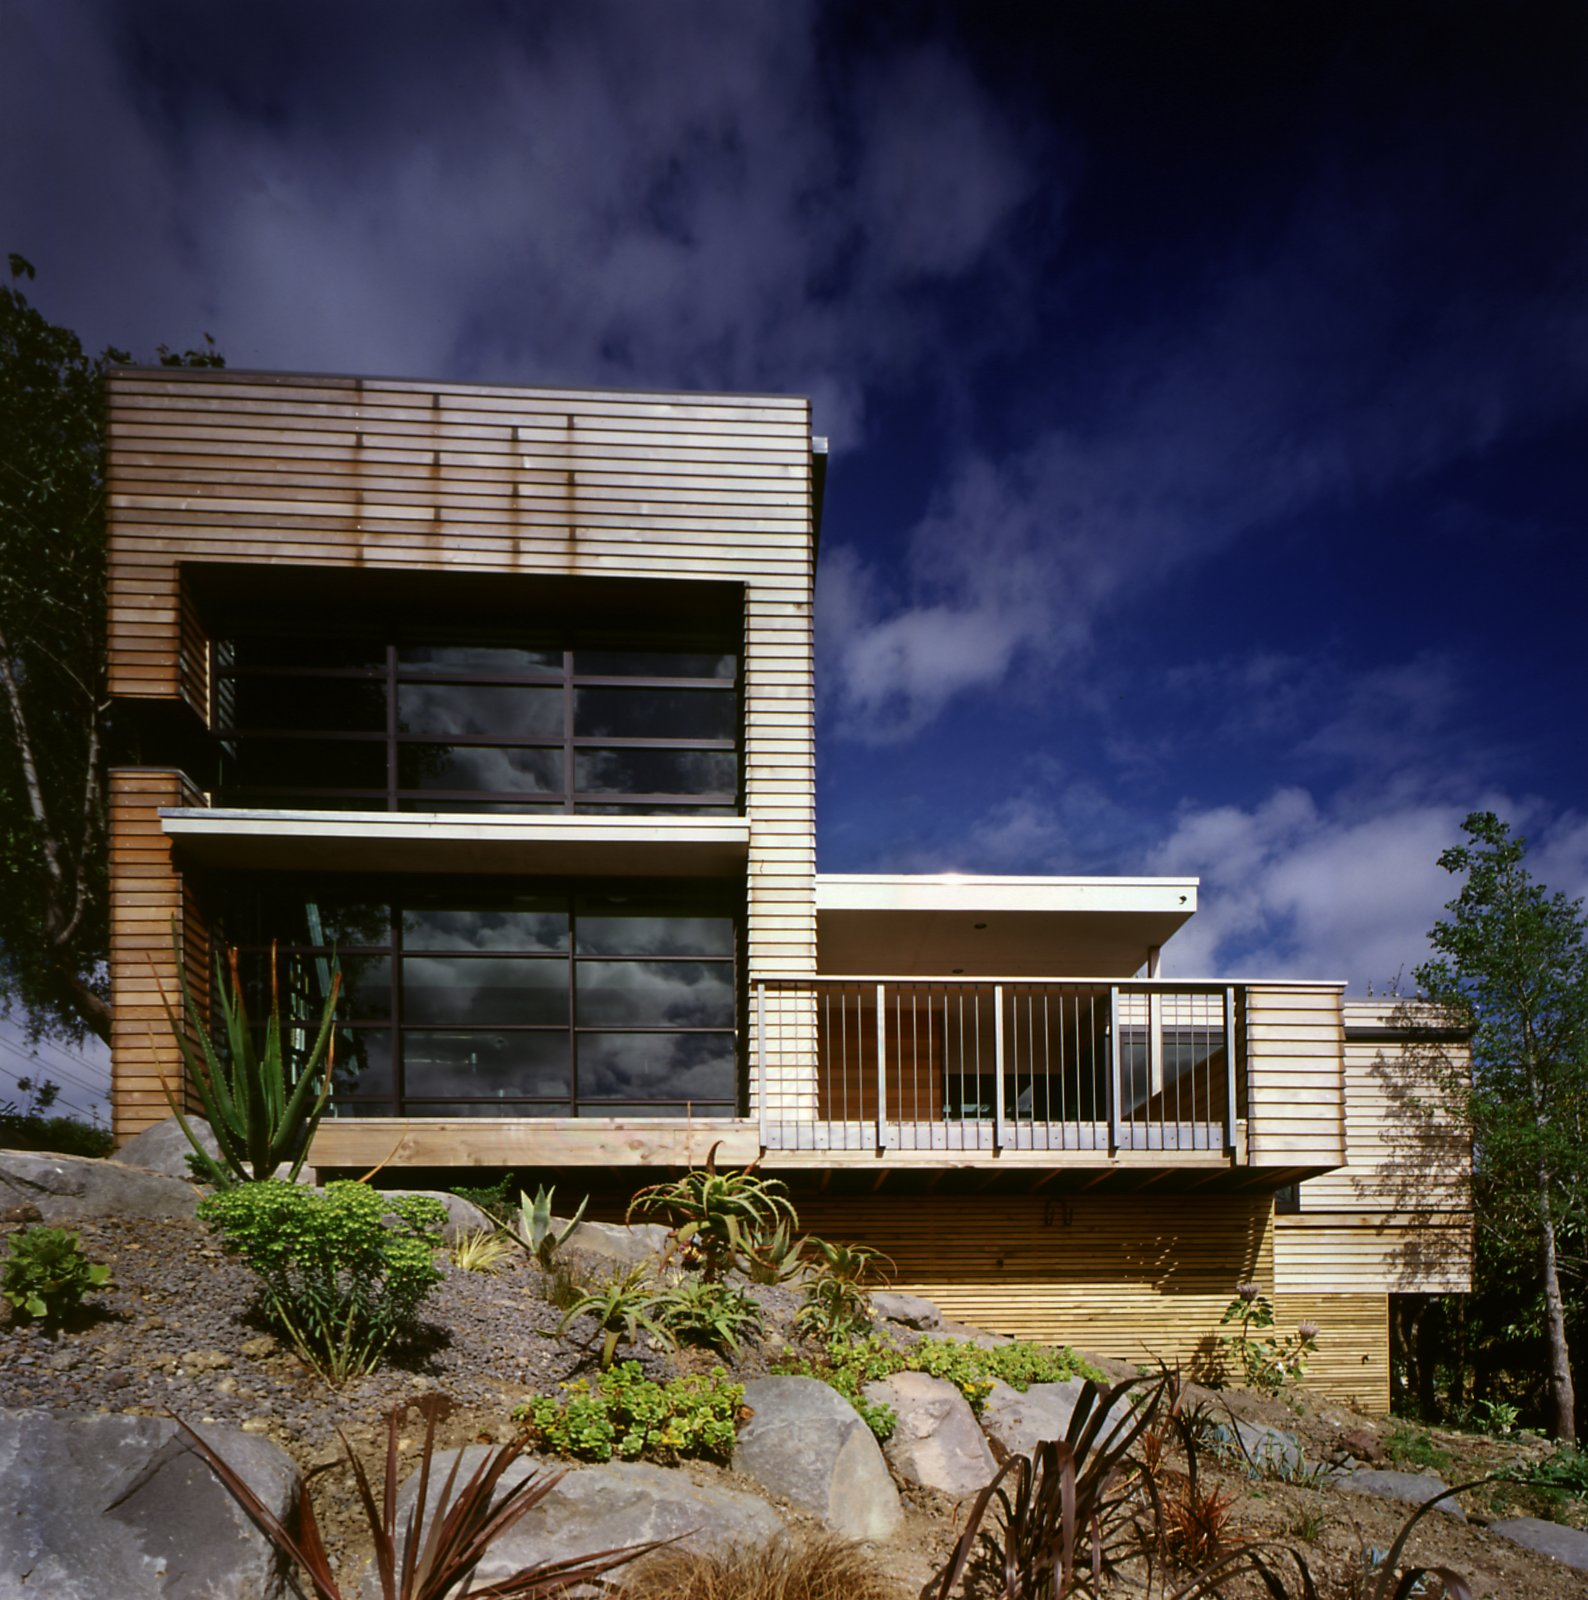 """The home's Canadian cedar cladding and aluminium joinery is low-maintenance, and designed to weather gently over time. The natural finish blends well with the surrounding garden, with its sculptural, desert plants. """"We face south-west, so the weather comes straight at us, and the wind is loaded with salt,"""" says Hughes. """"Fortunately, the plants we liked don't give a hoot about the wind."""" 20 Desert Homes - Photo 23 of 23"""